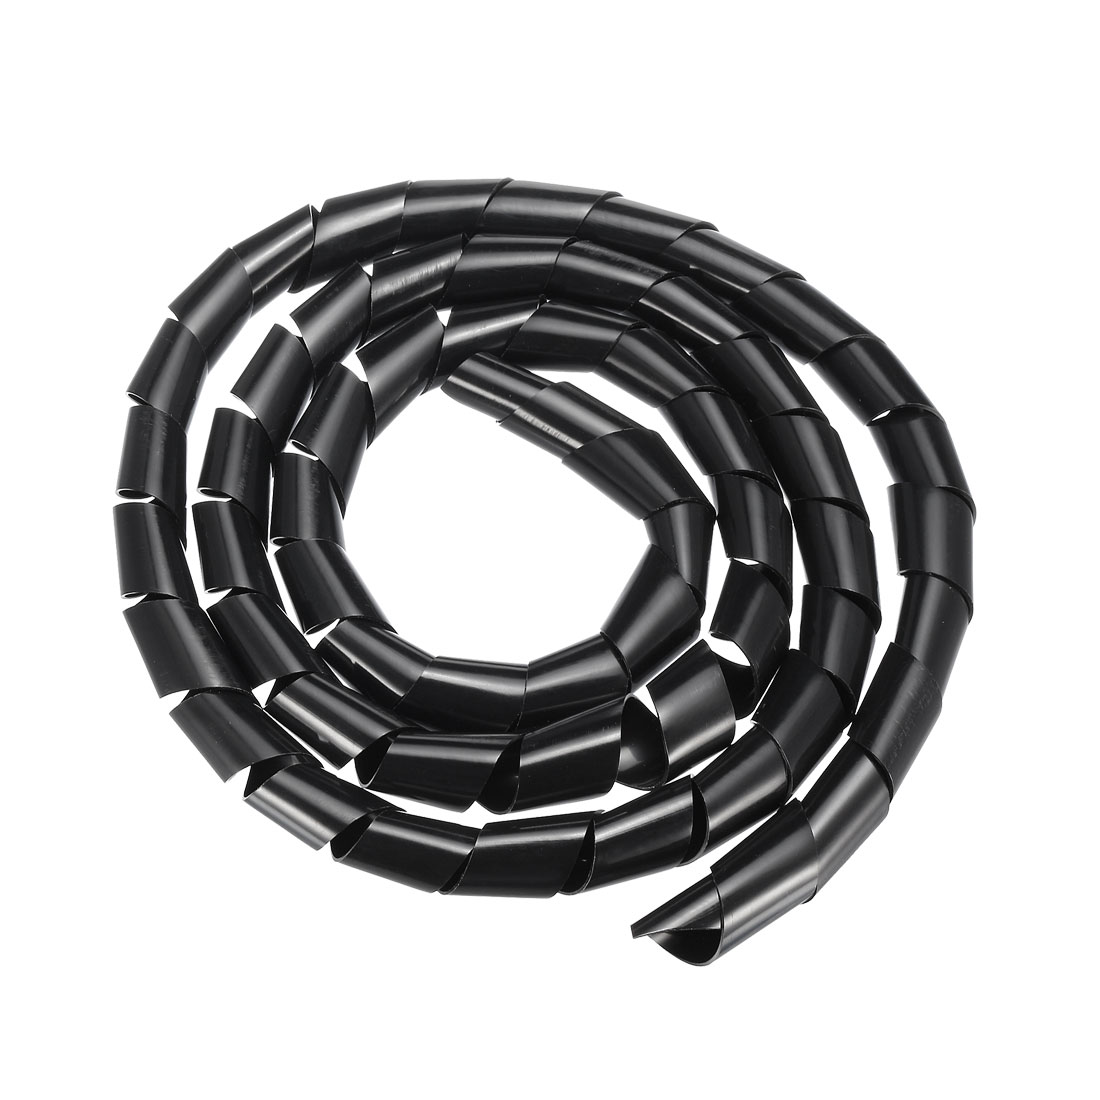 21mm Flexible Spiral Tube Cable Wire Wrap Computer Manage Cord 2M Length Black